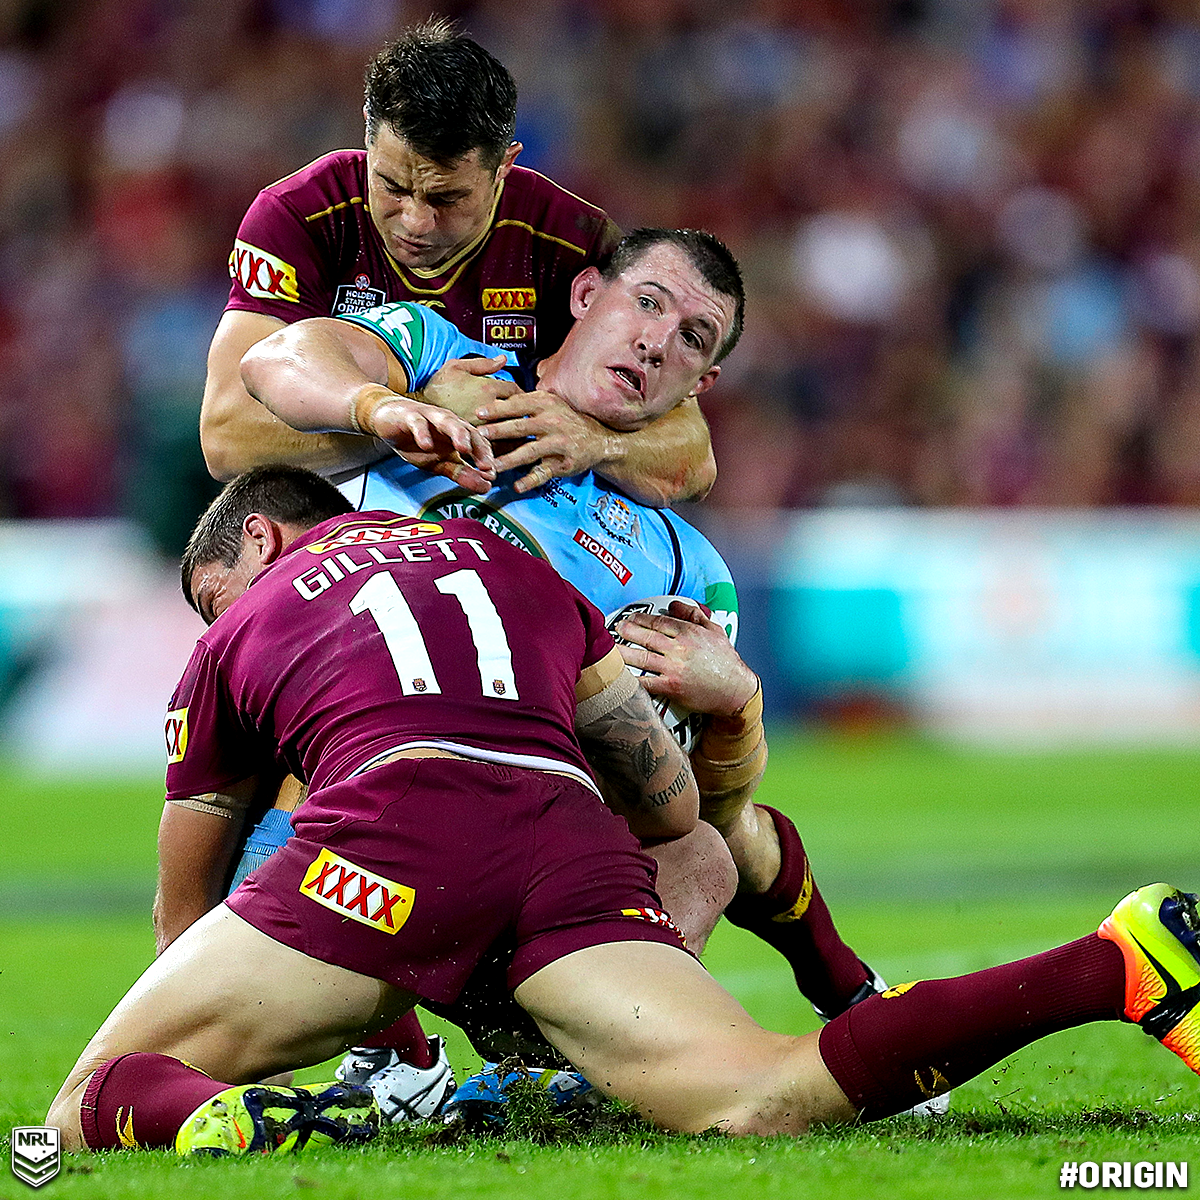 Love Gallen's Facial Expression In This Photo